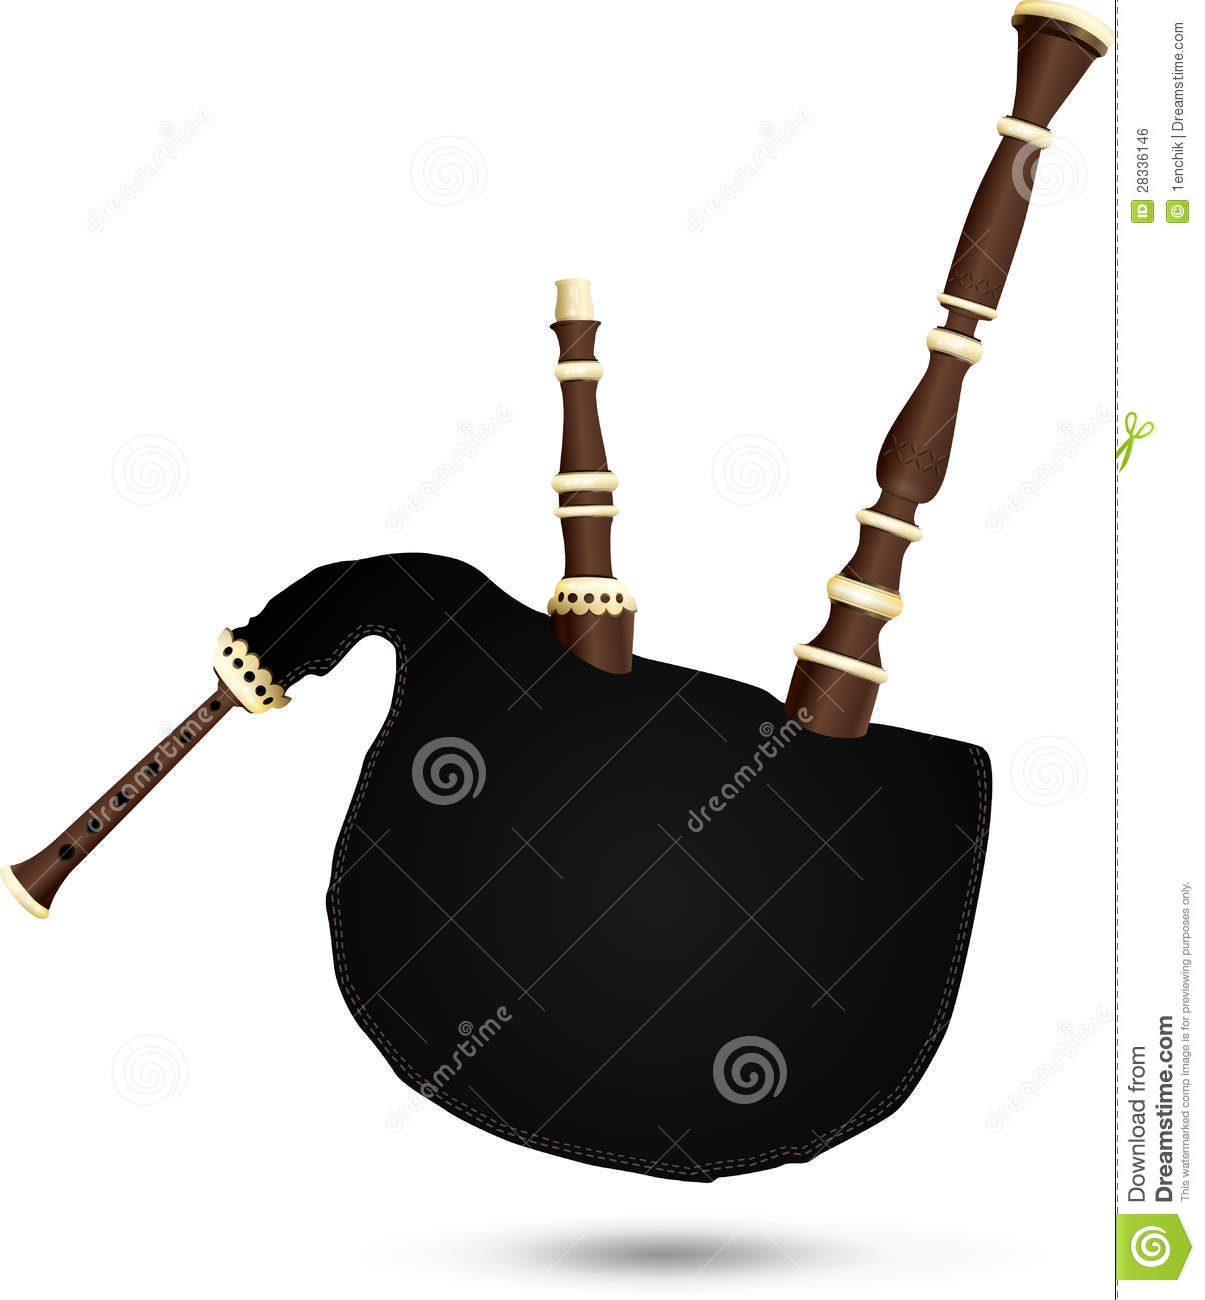 More similar stock images of ` Biniou koz - traditional French bagpipe ...